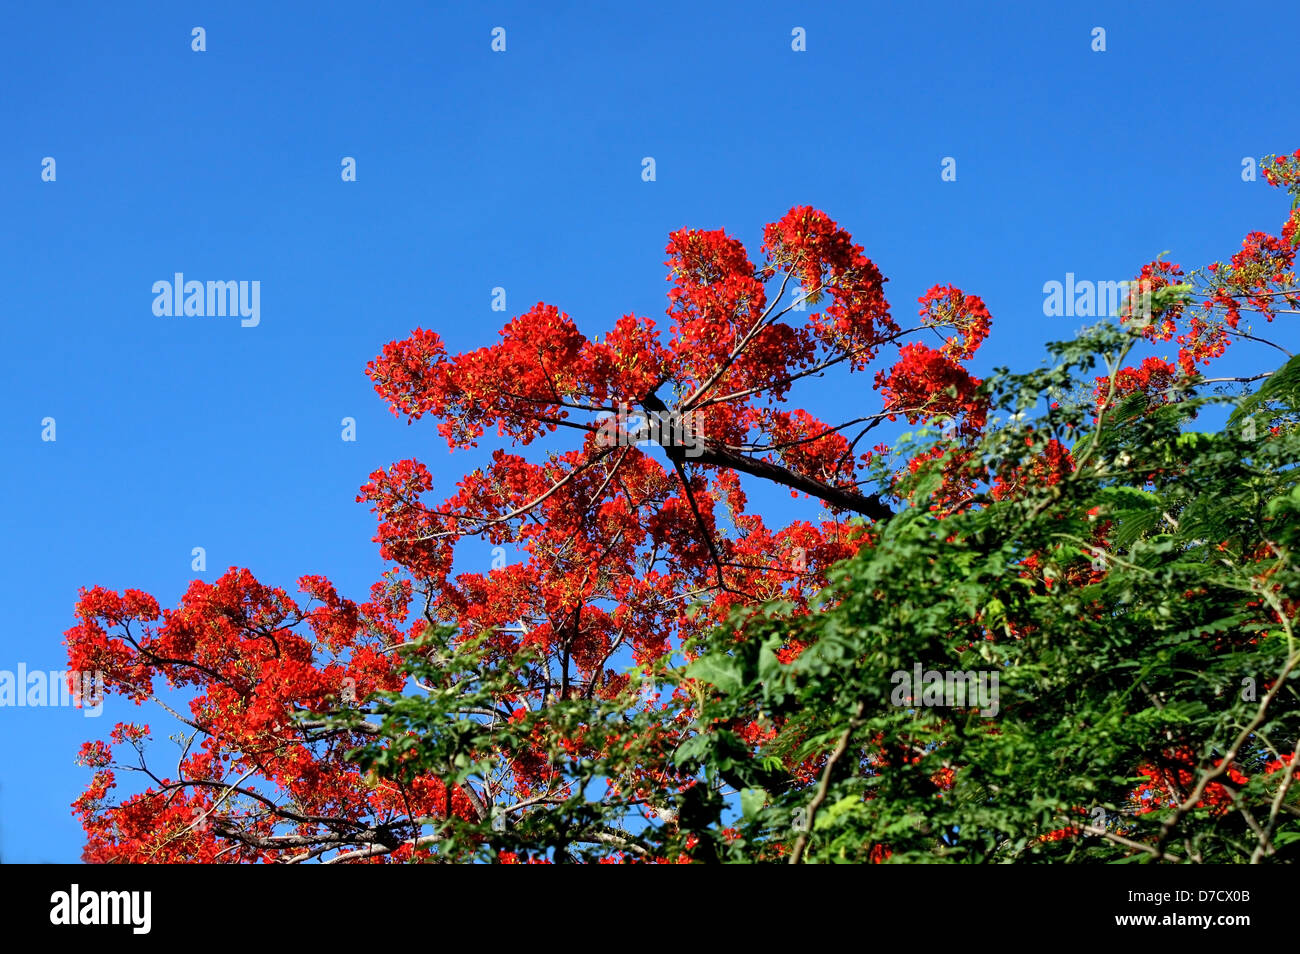 Deep Red- Orange flowers of Royal Poinciana or Flame tree - Stock Image